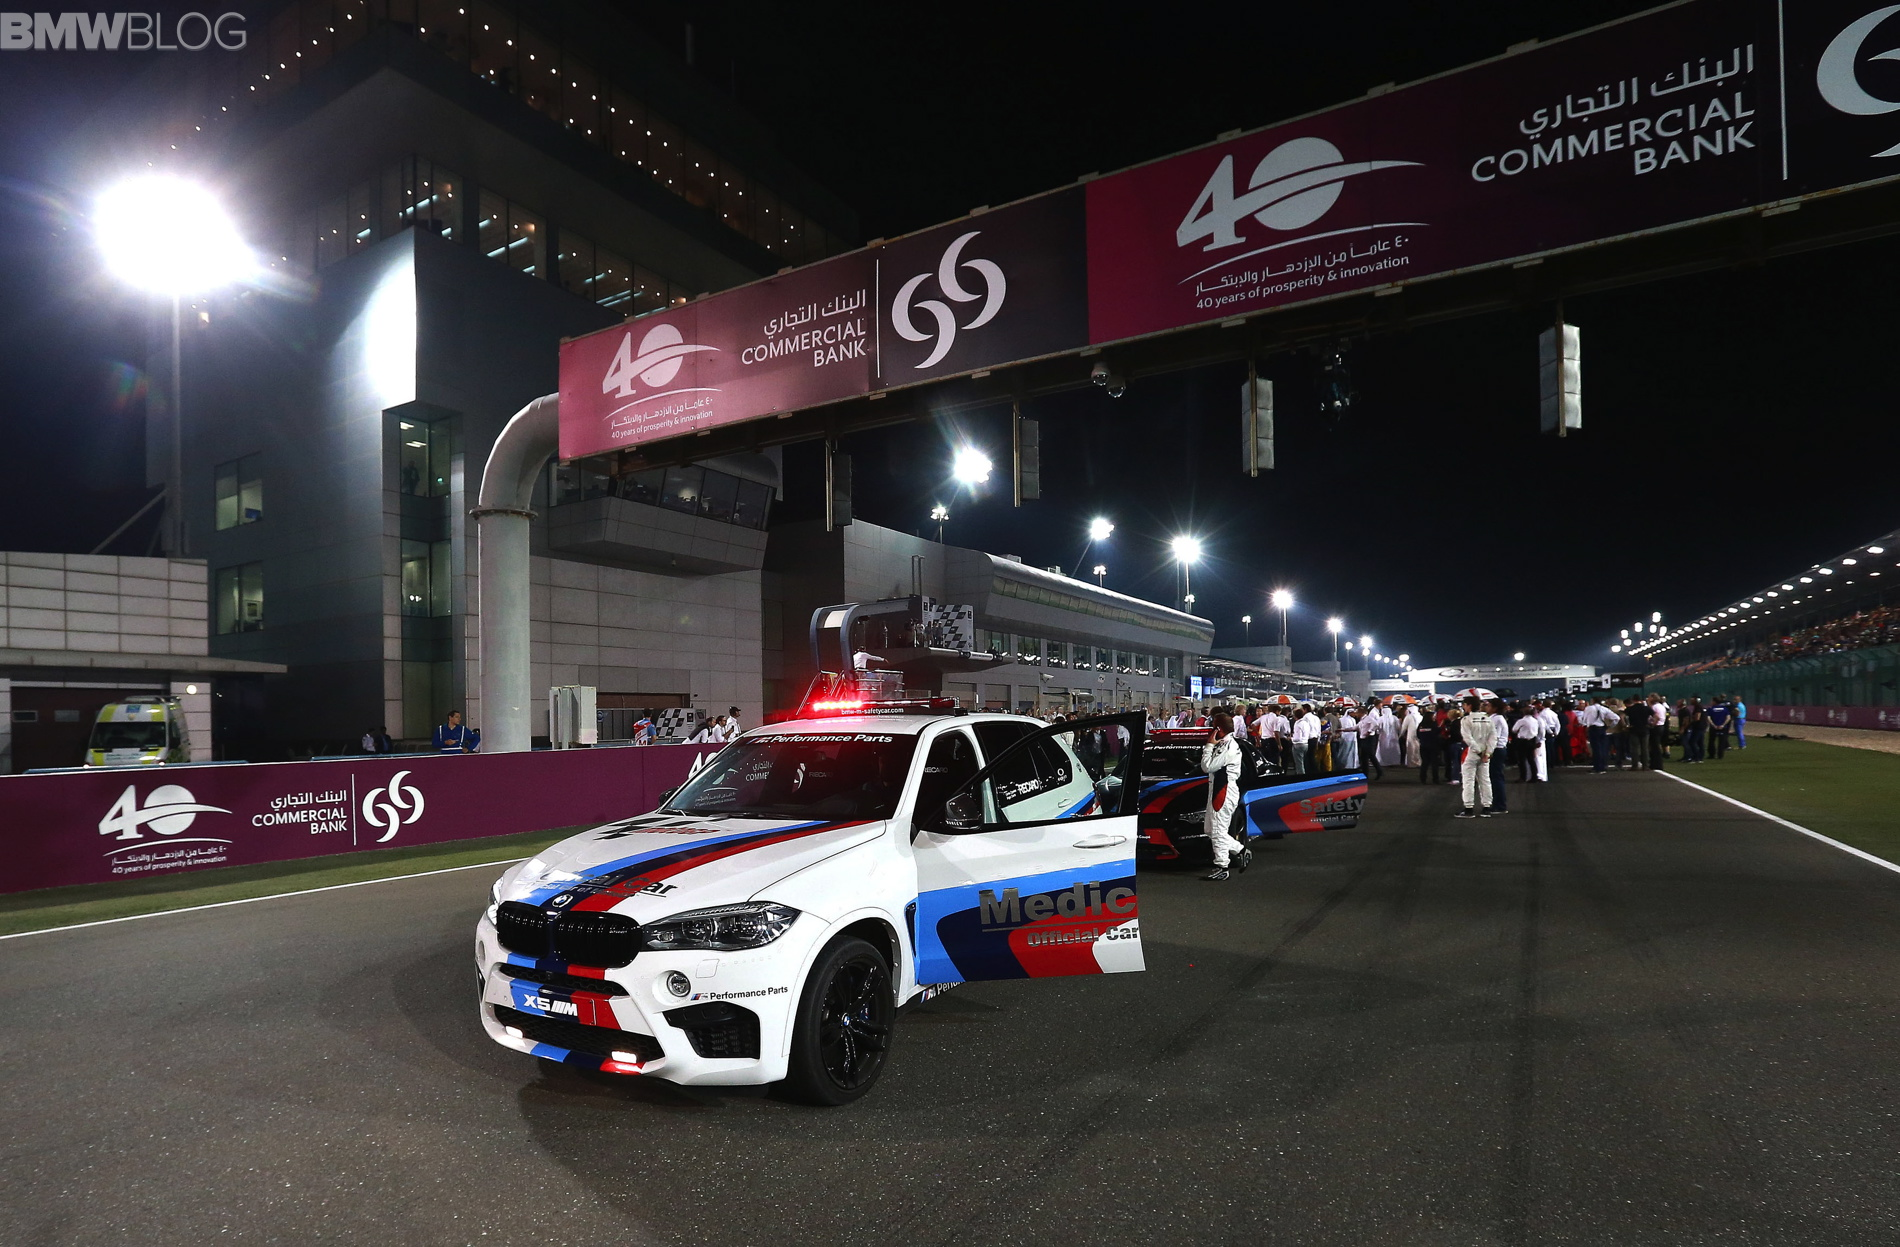 bmw safety car motogp images 01